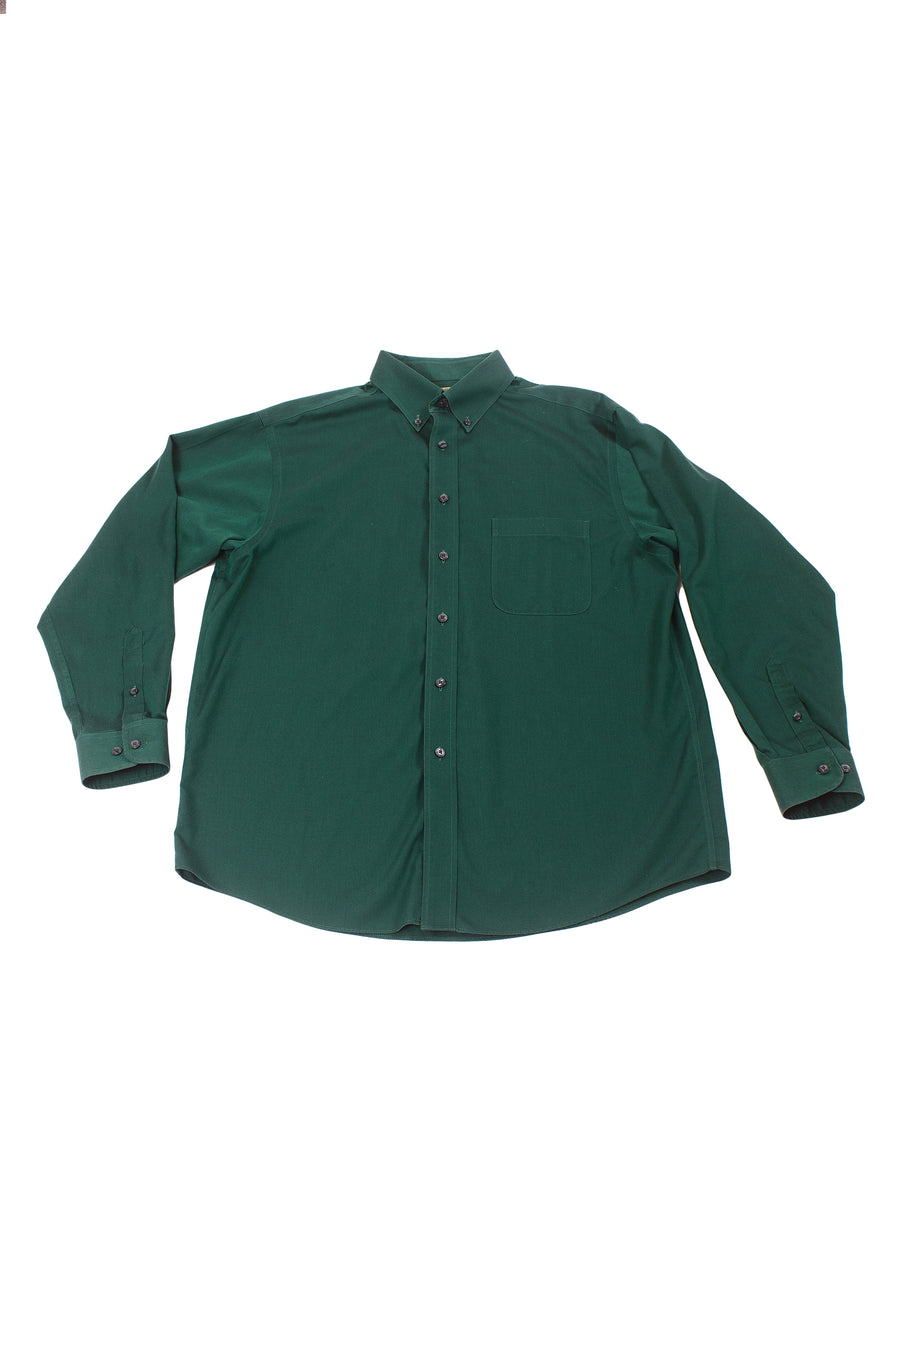 Vintage 90's Green Button Down Shirt